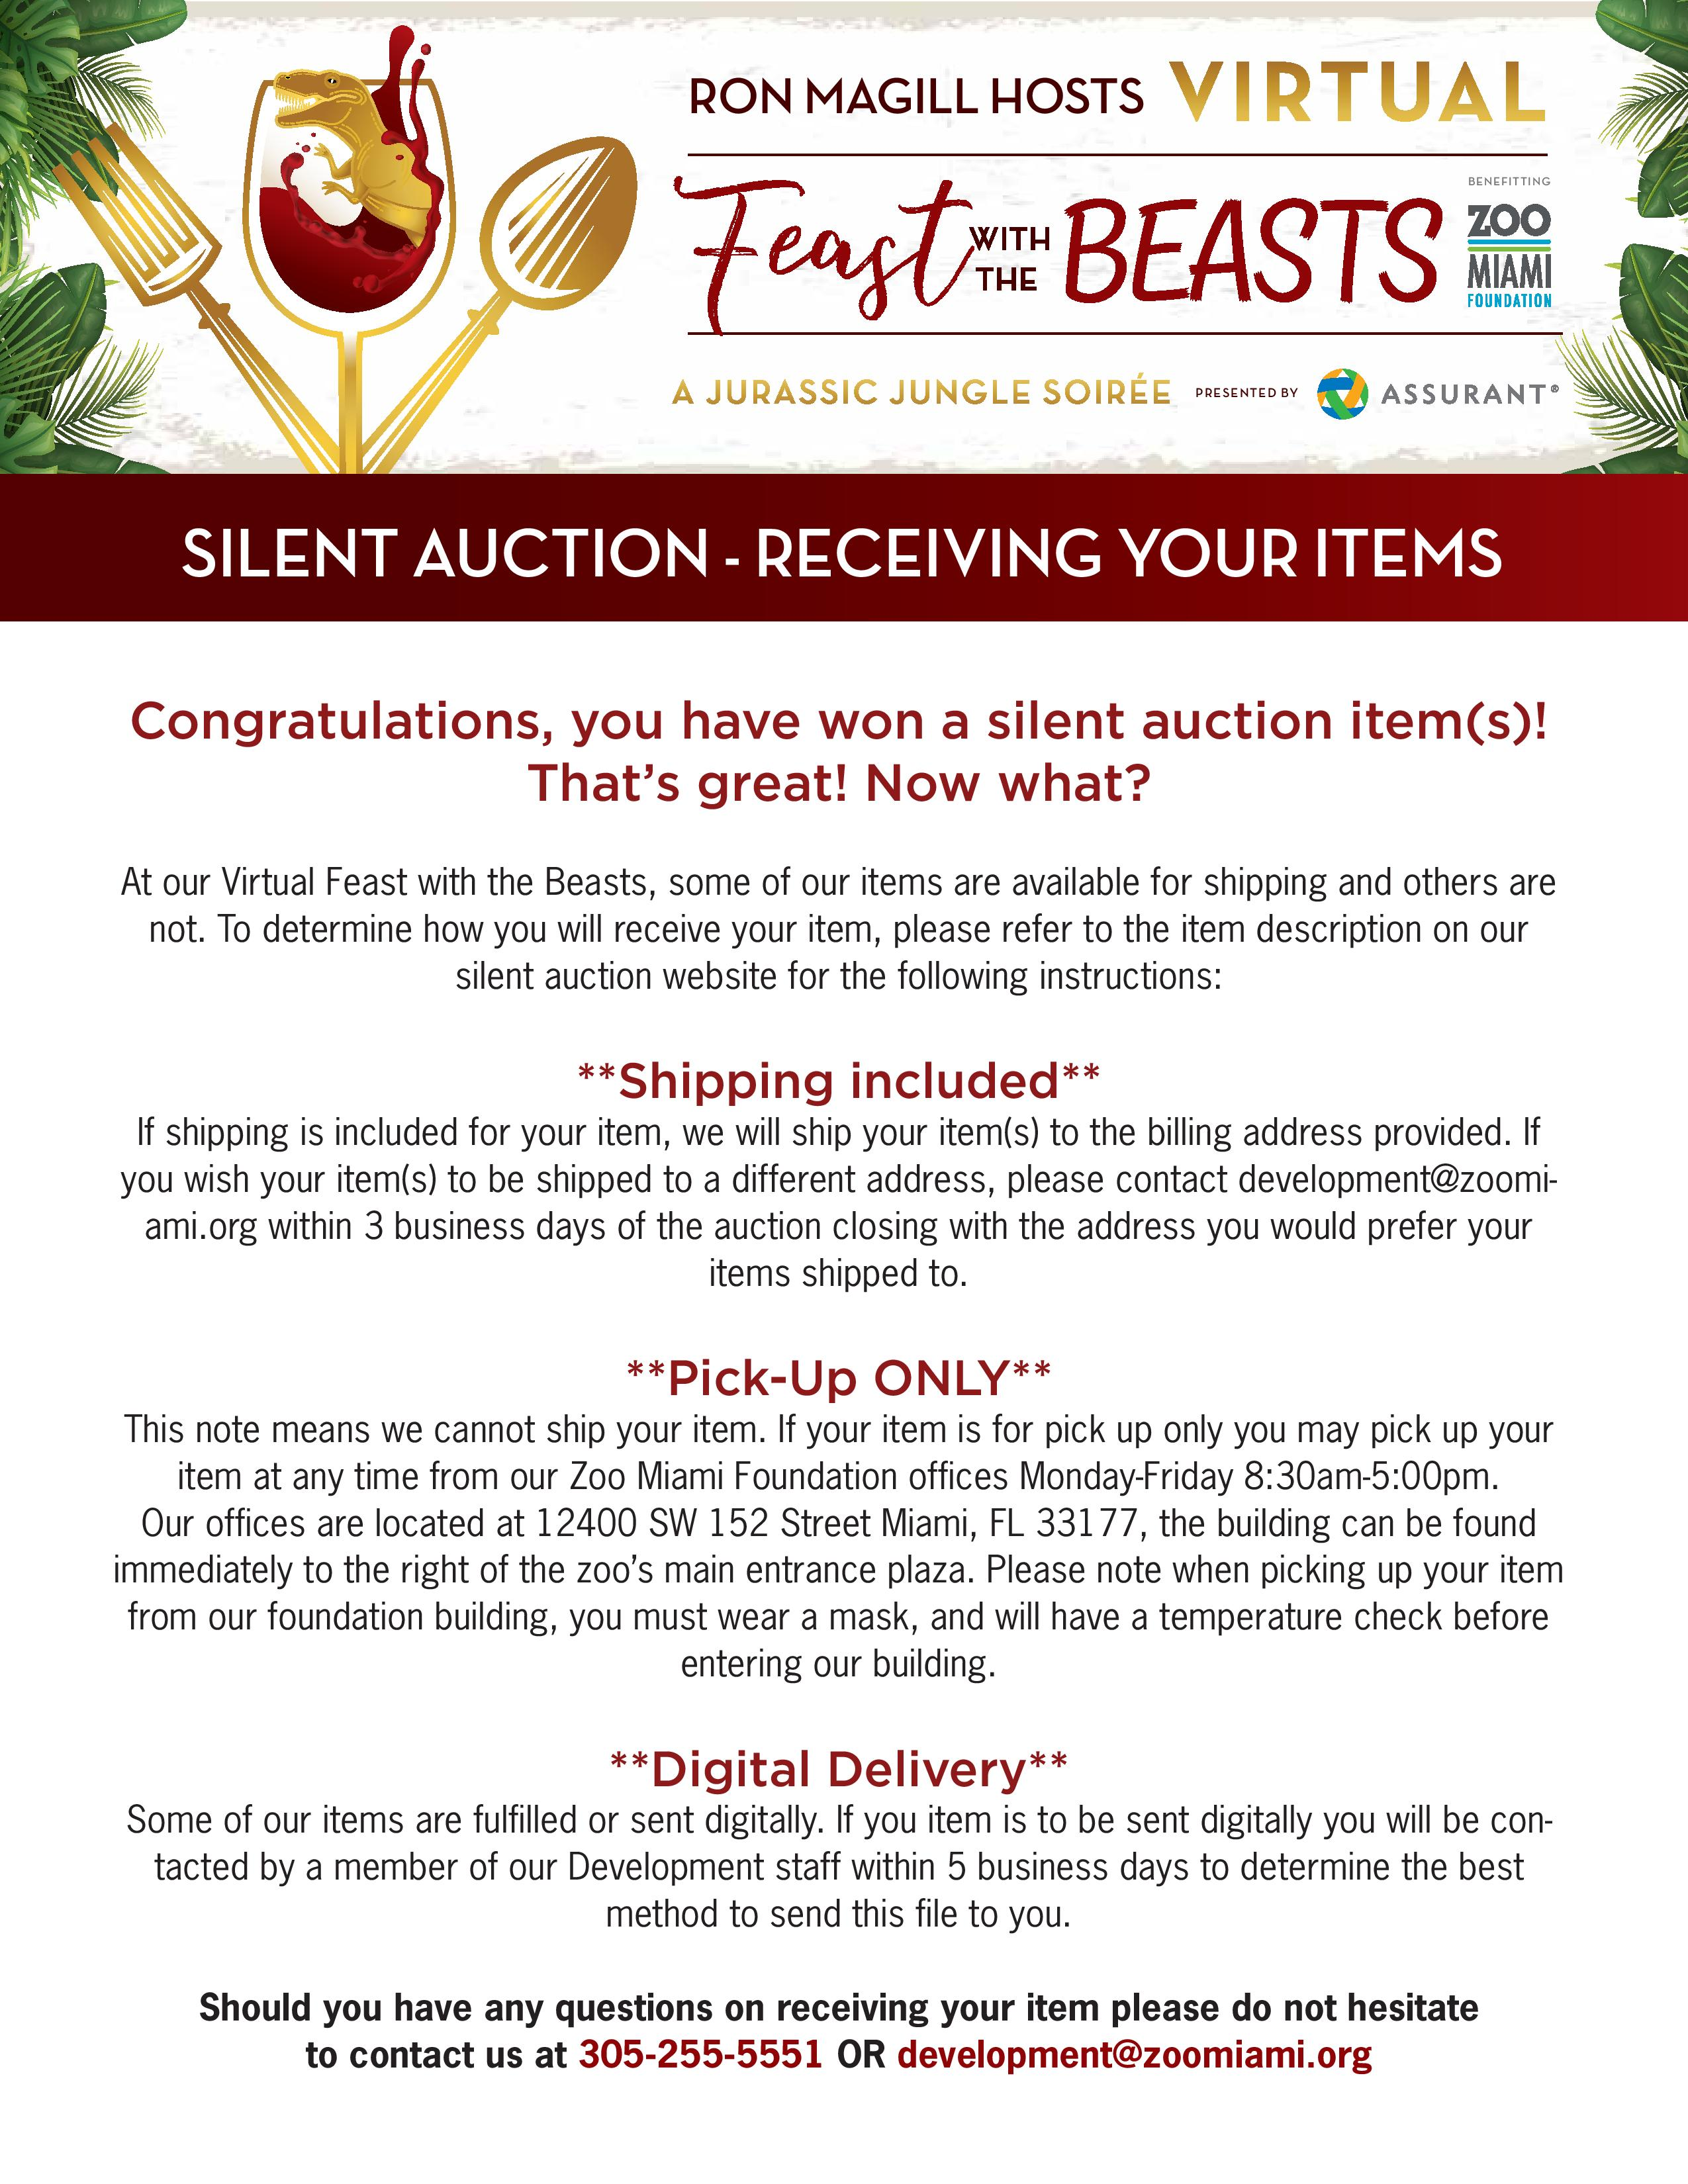 Silent Auction - Receiving Your Items